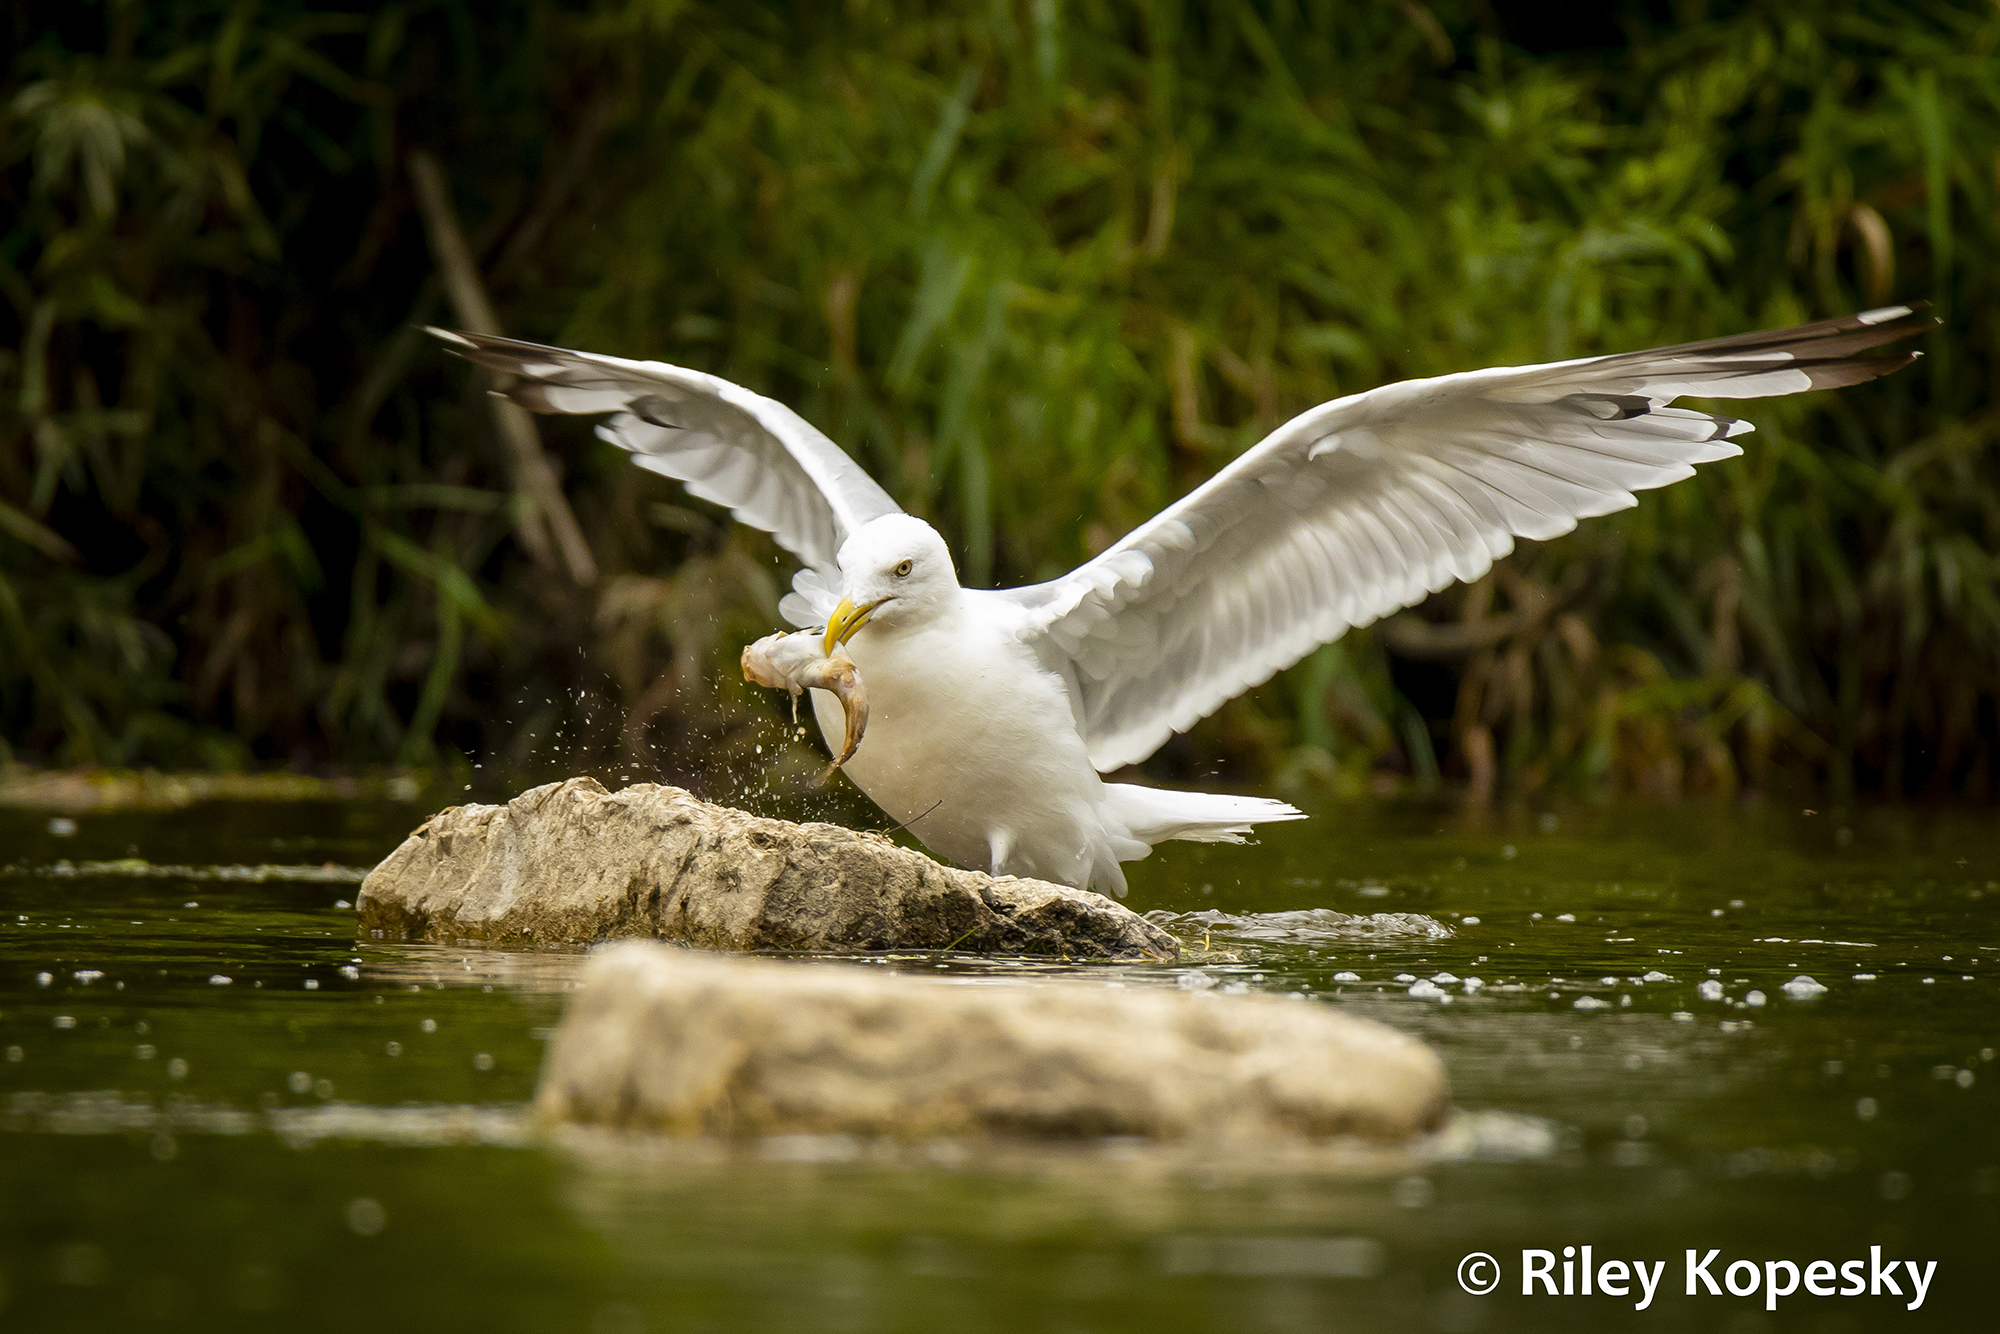 A seagull lands on a rock in the water after catching a fish